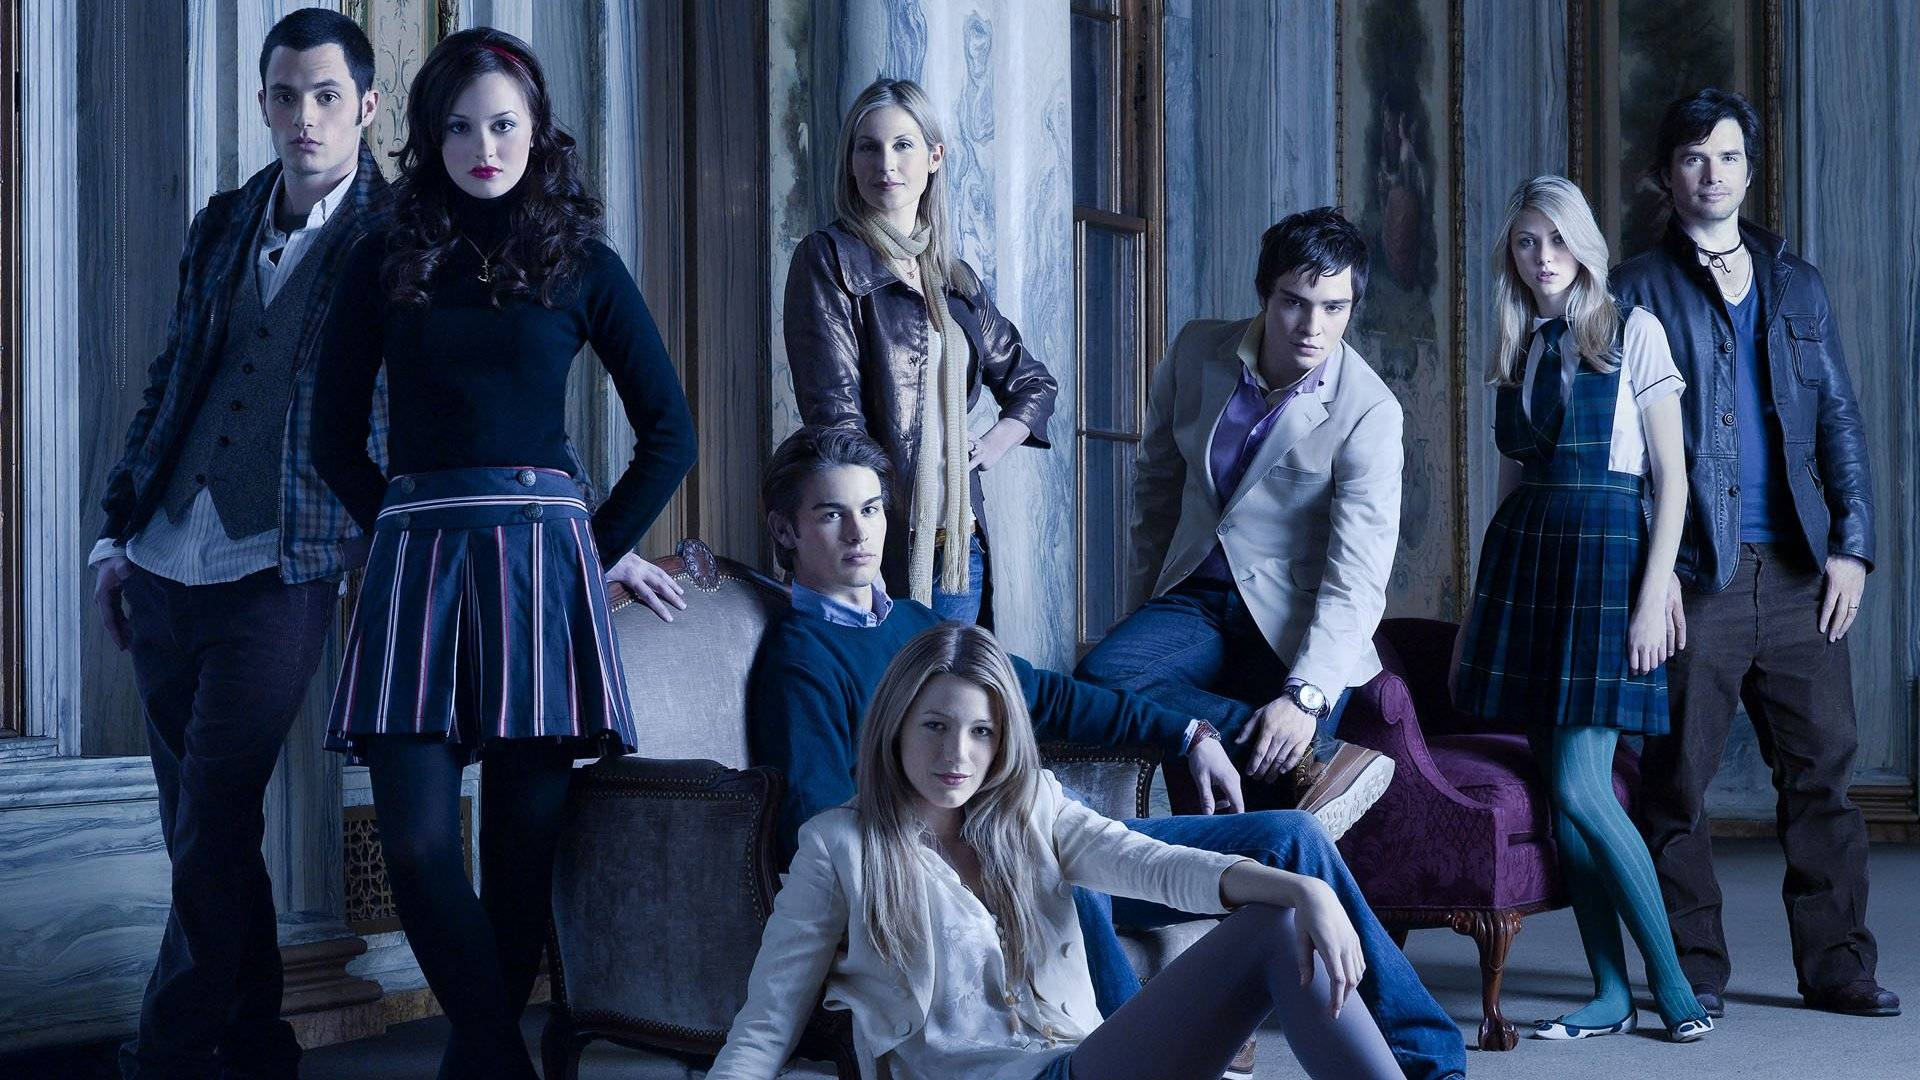 Gossip Girl - Gossip Girl Wallpaper